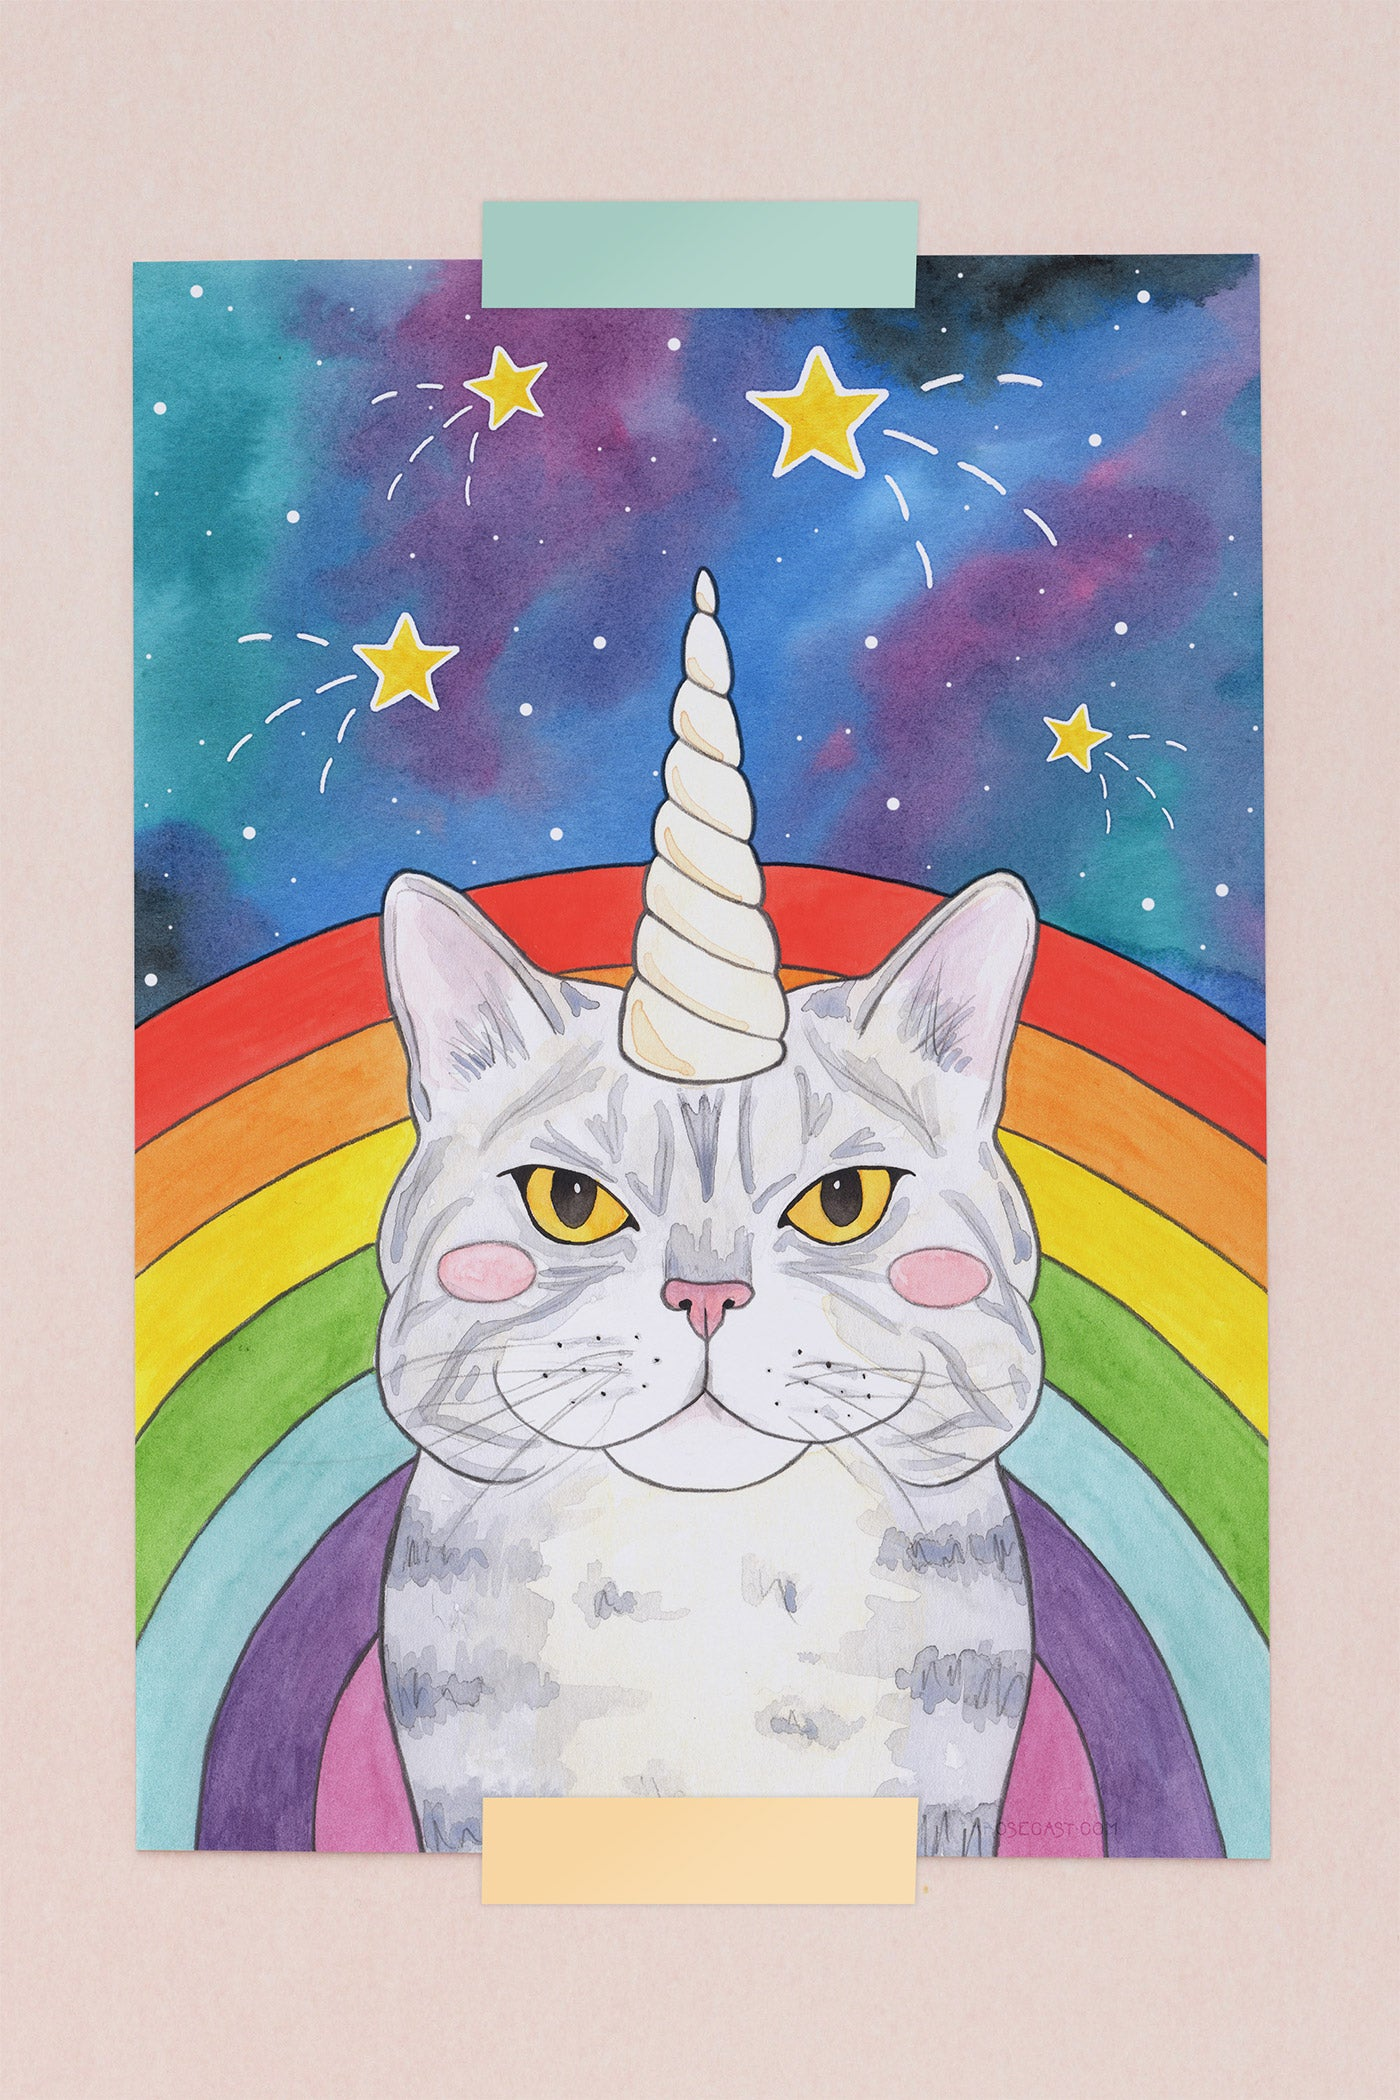 Magical Caticorn Cosmic Rainbow Illustrated Art Print